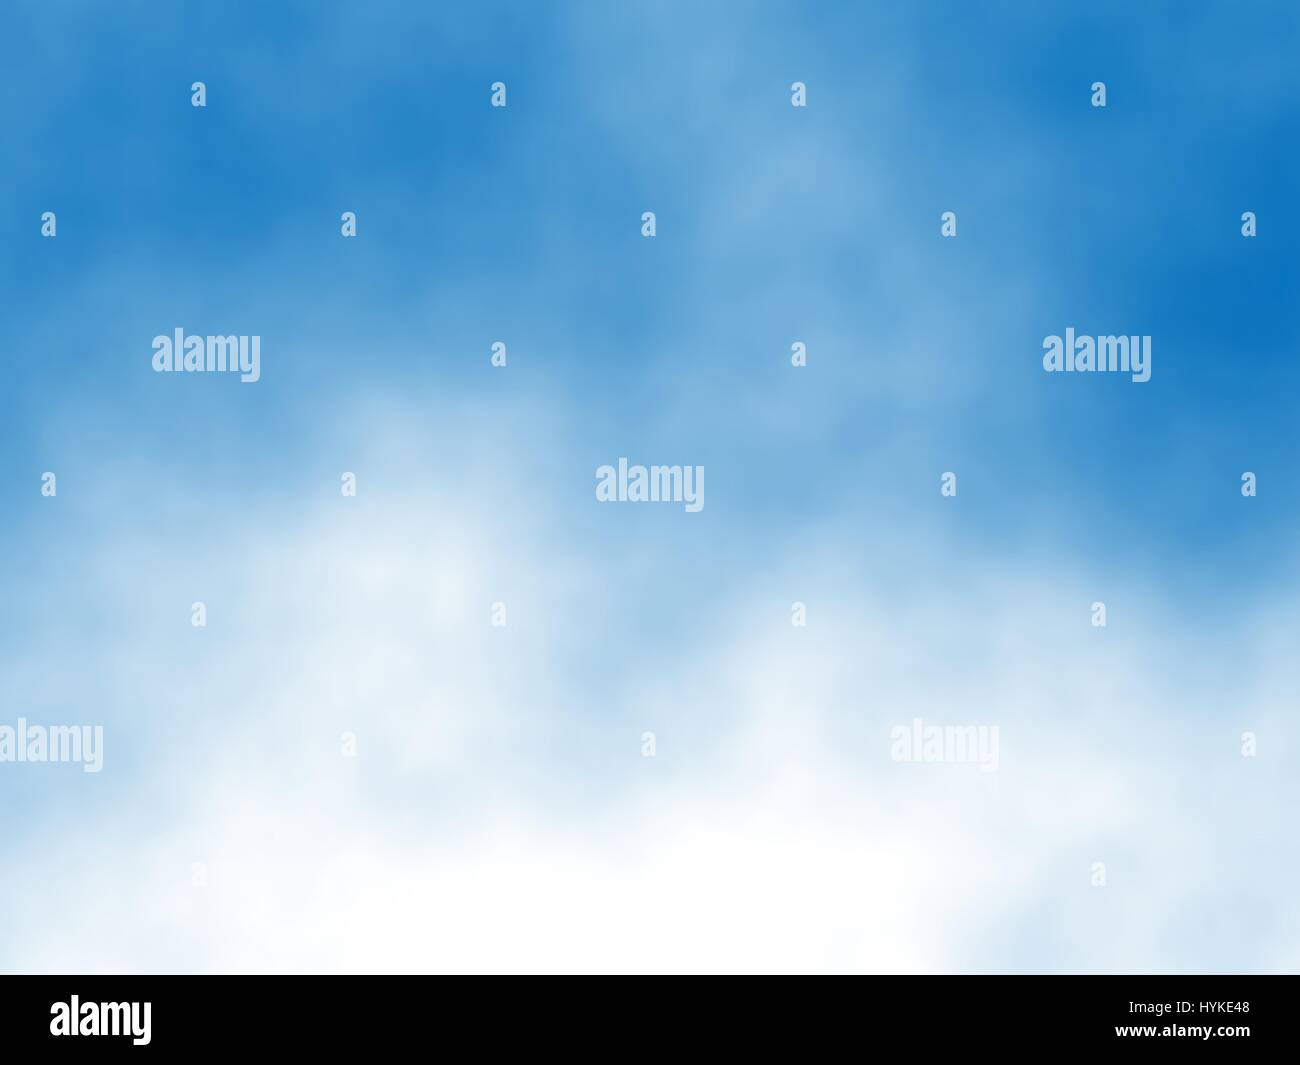 Editable vector detail of white clouds in a blue sky created with a gradient mesh - Stock Vector